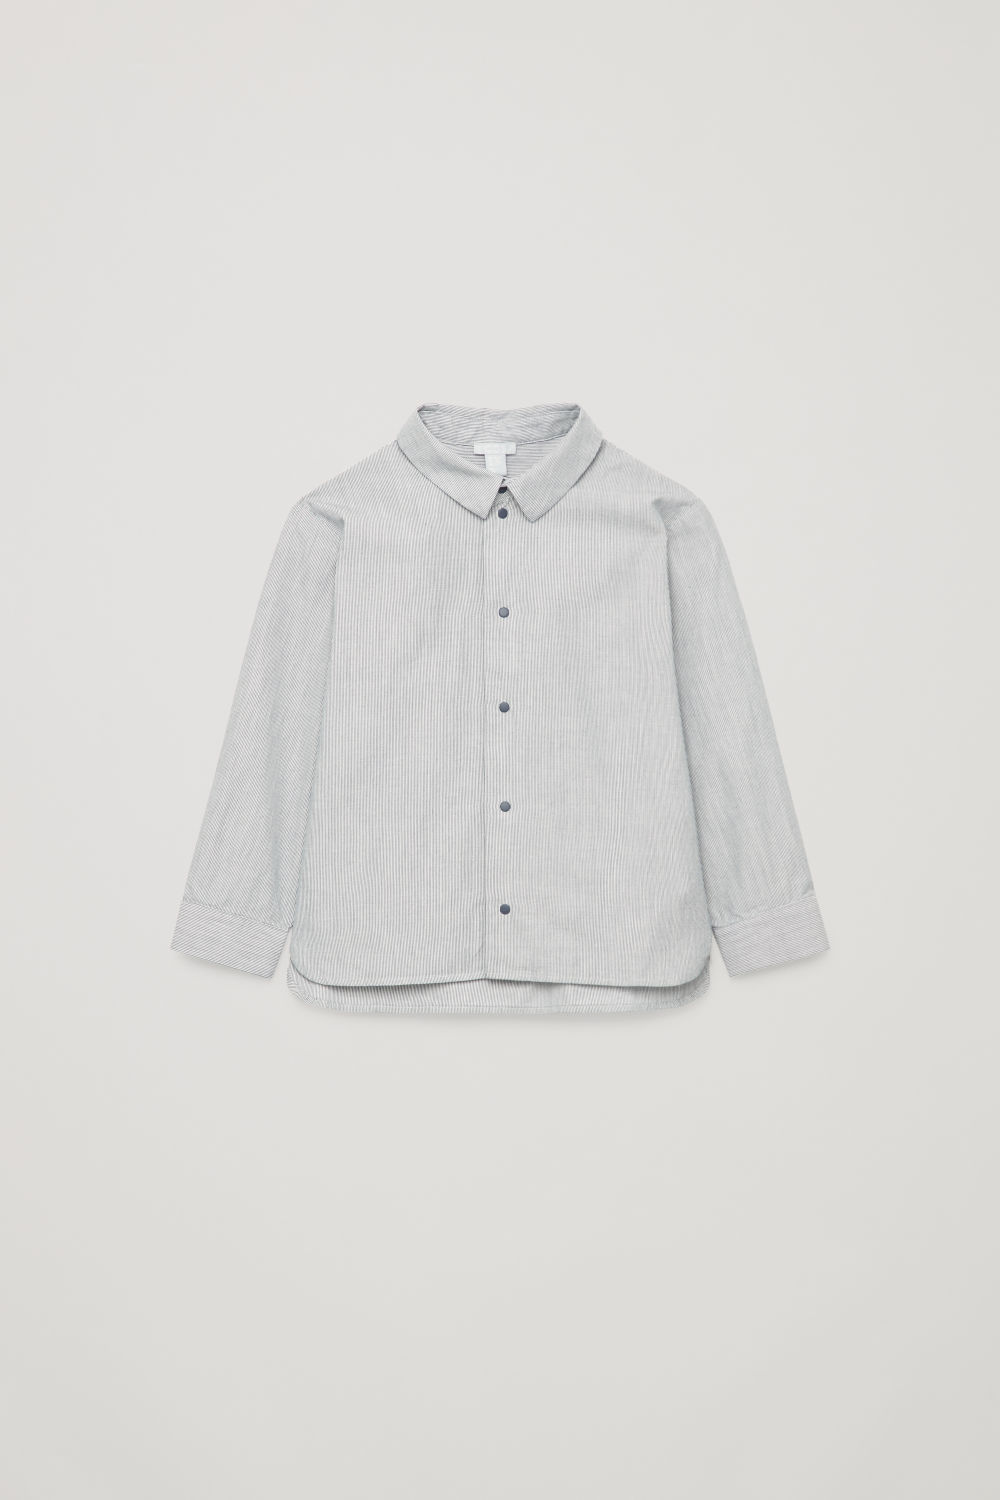 COTTON SHIRT WITH SNAP BUTTONS